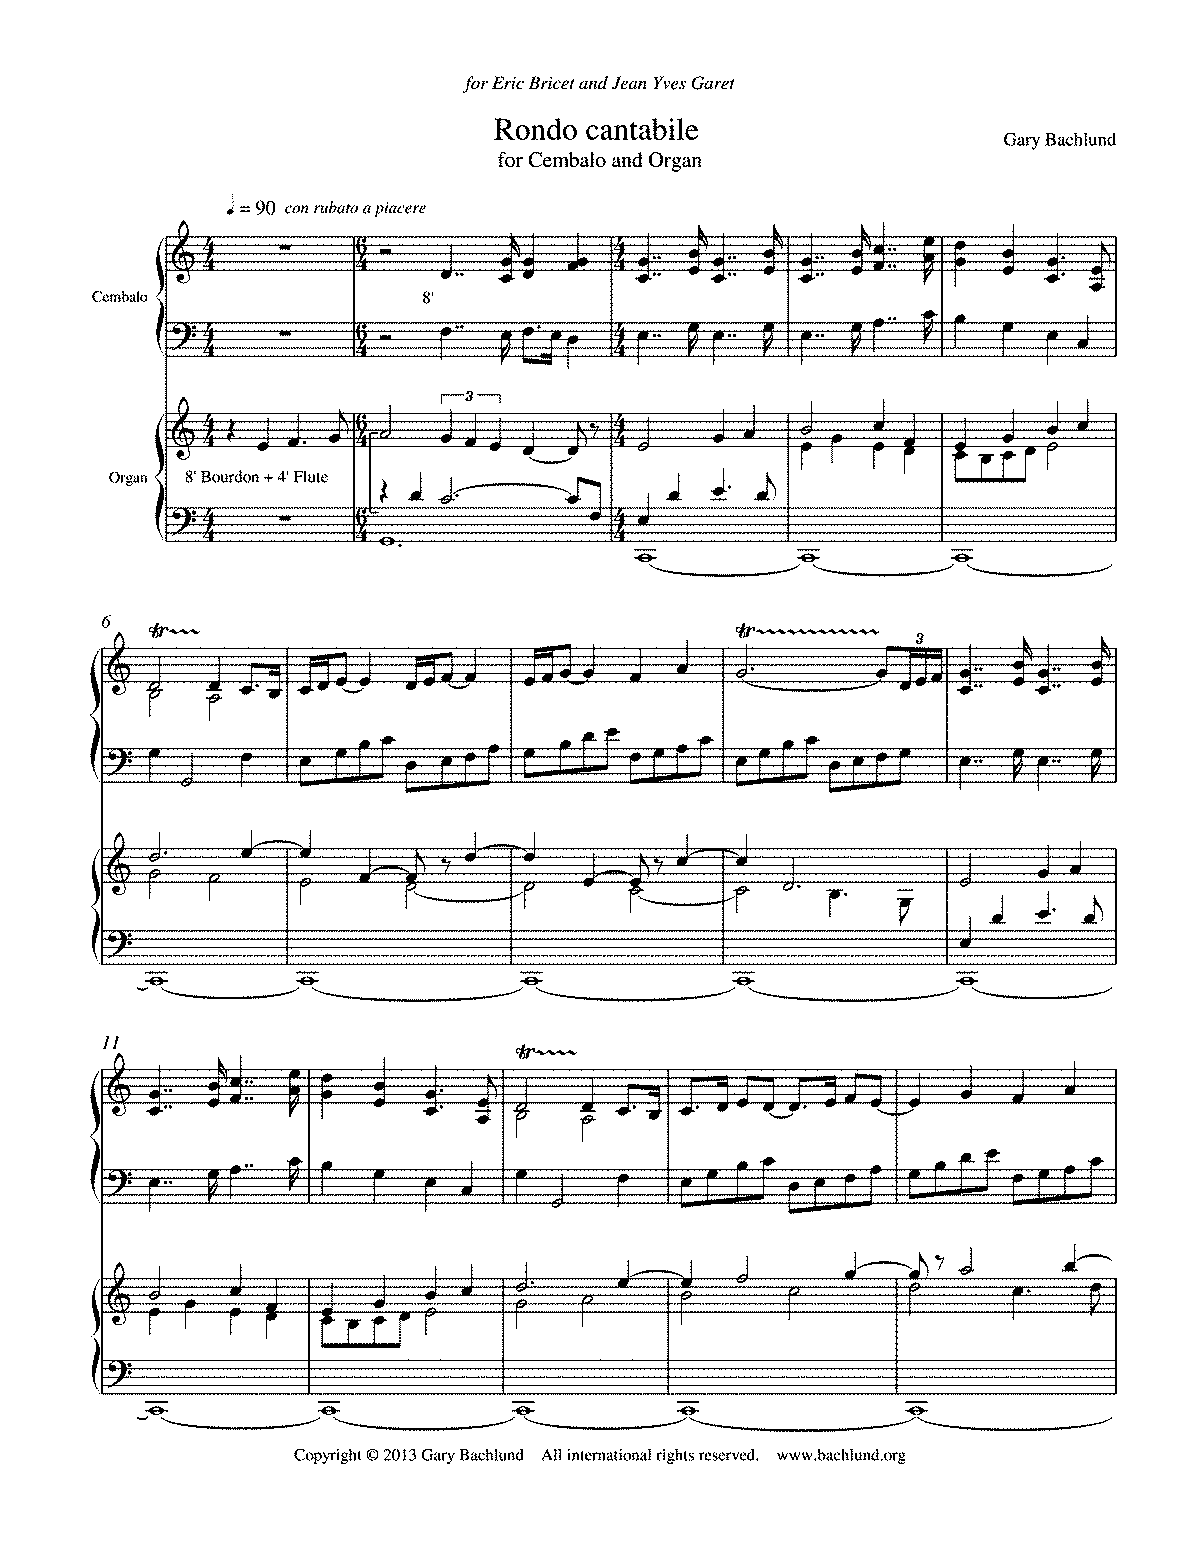 PMLP519015-Rondo cantabile for Cemablo & Organ.pdf